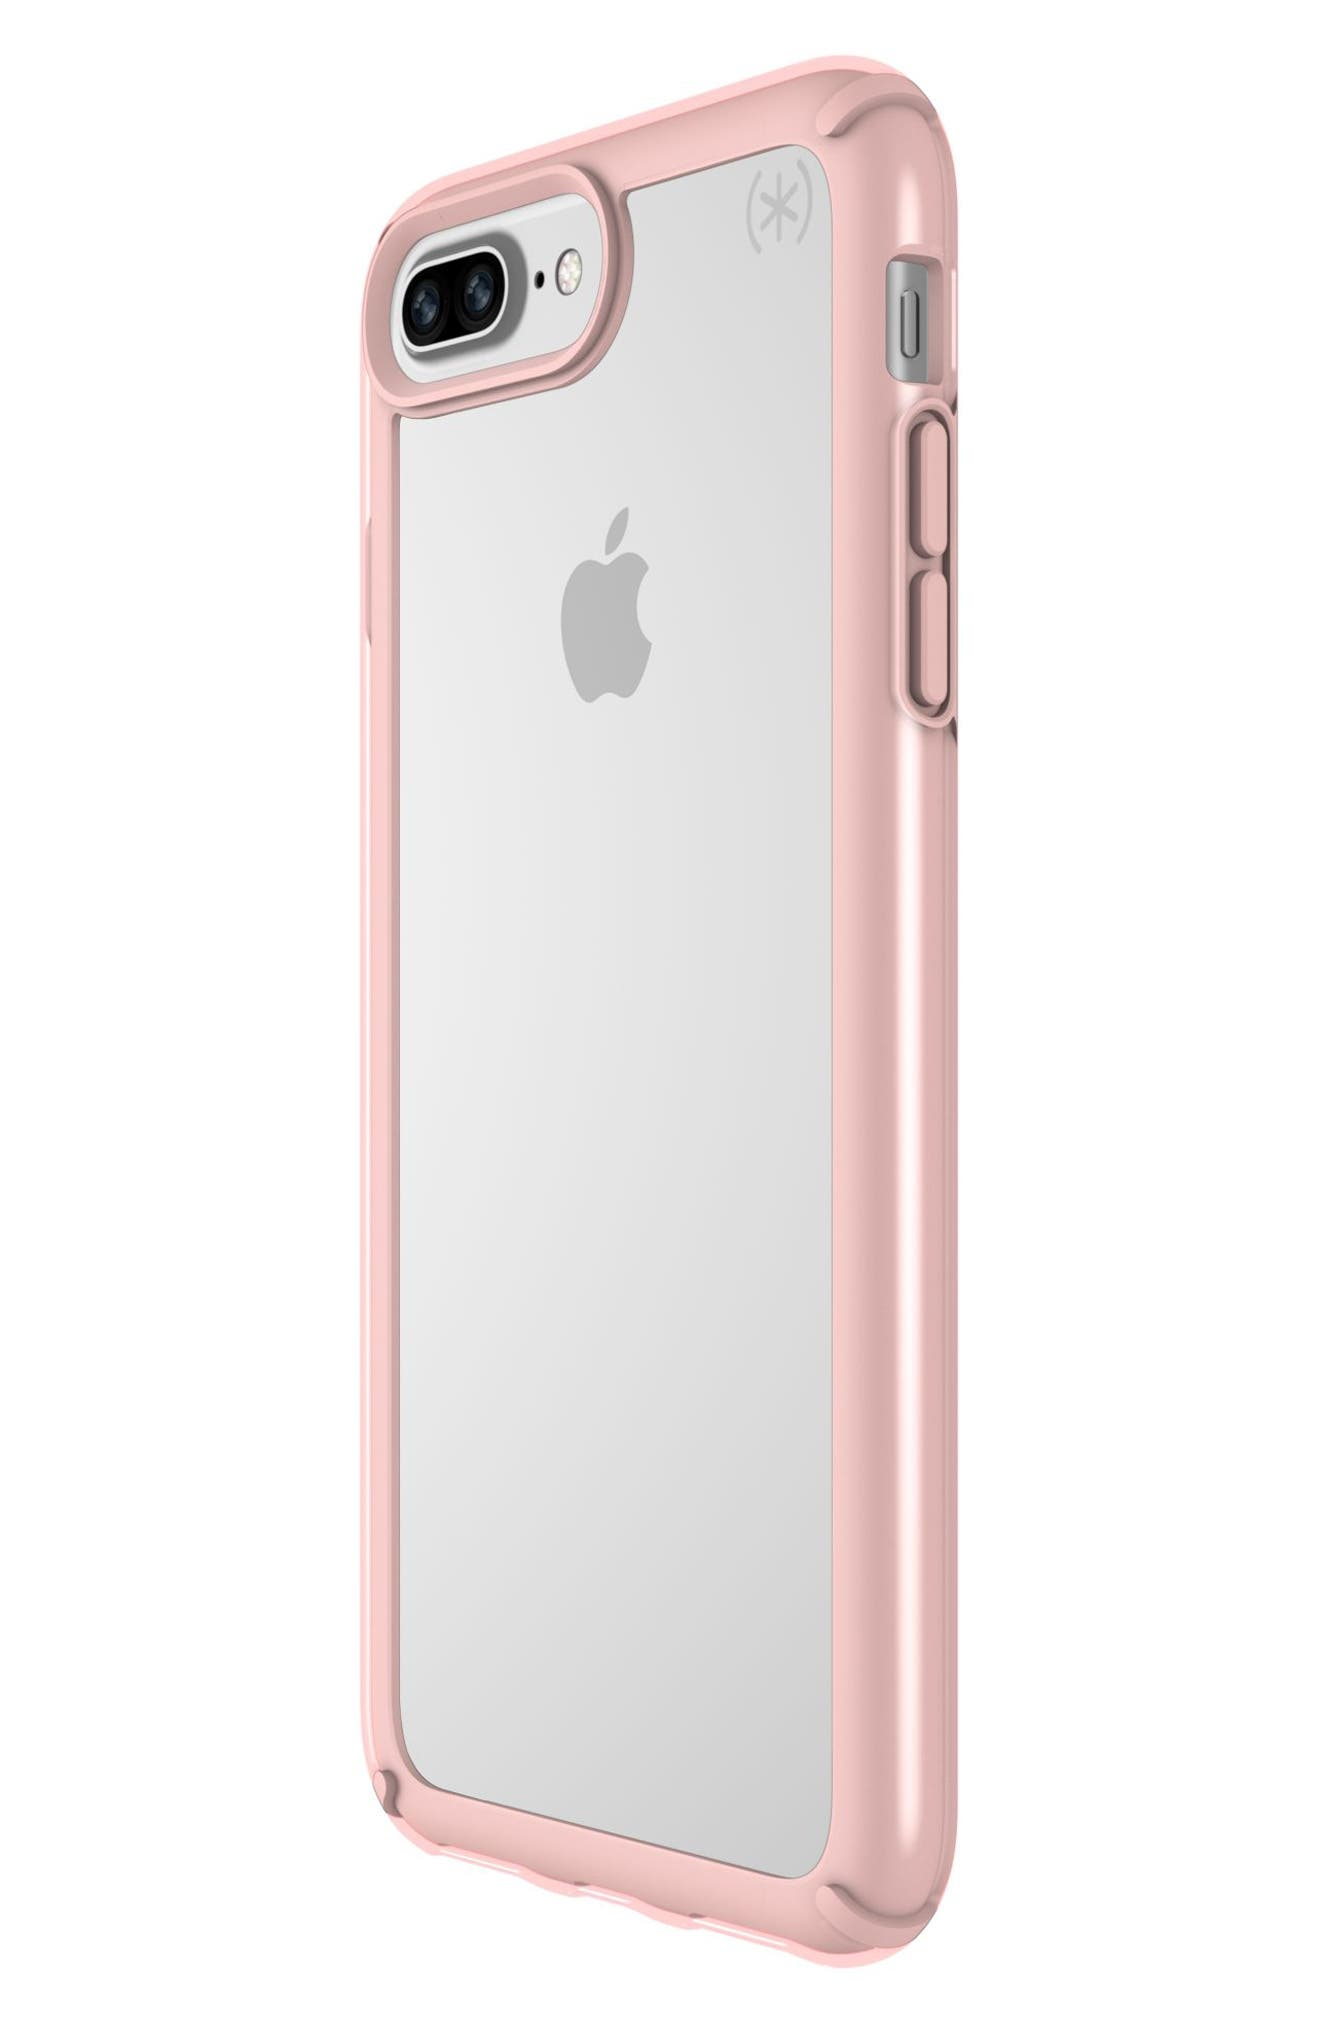 iPhone 6/6s/7/8 Plus Case,                             Alternate thumbnail 5, color,                             CLEAR/ ROSE GOLD